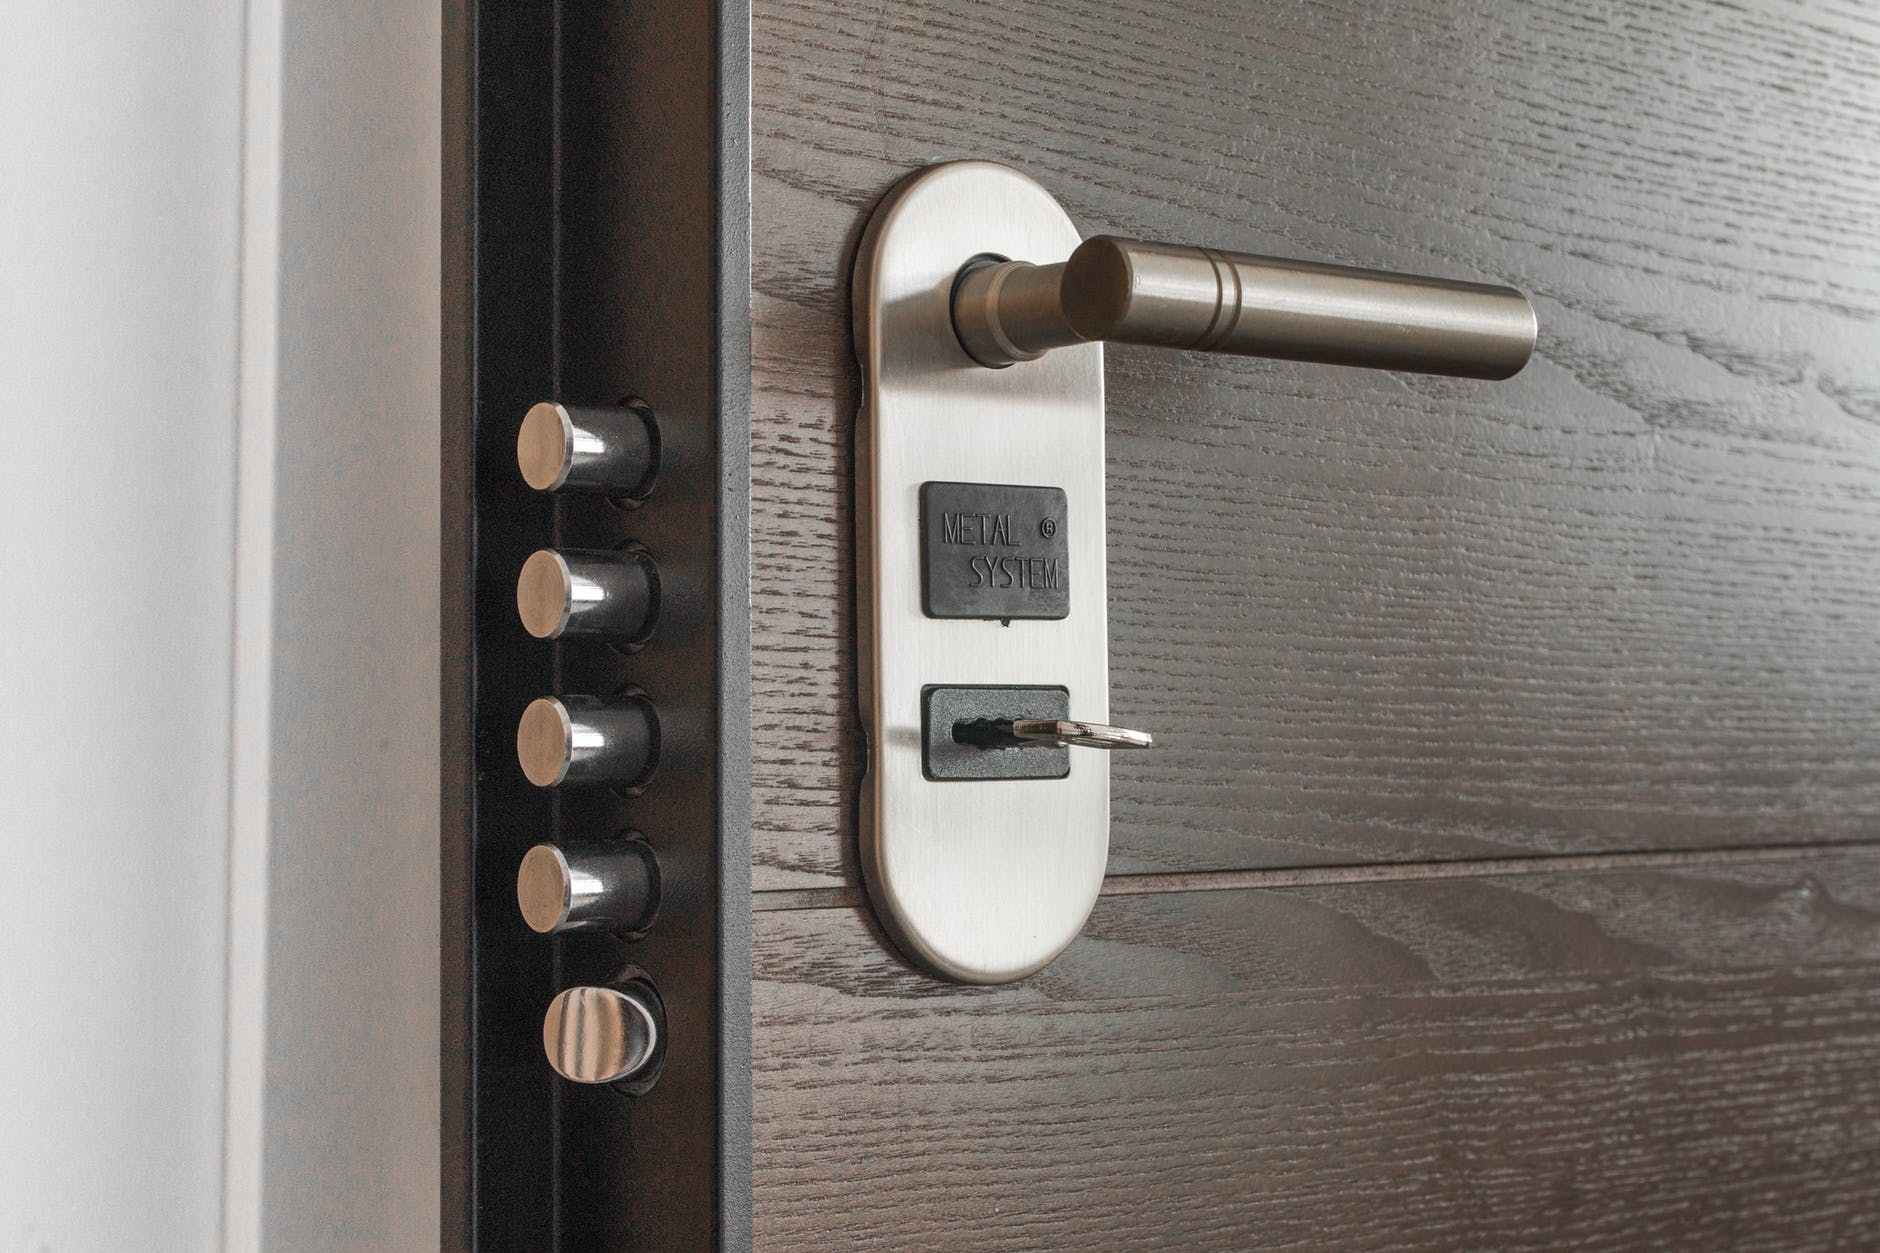 A home with a metal security system.